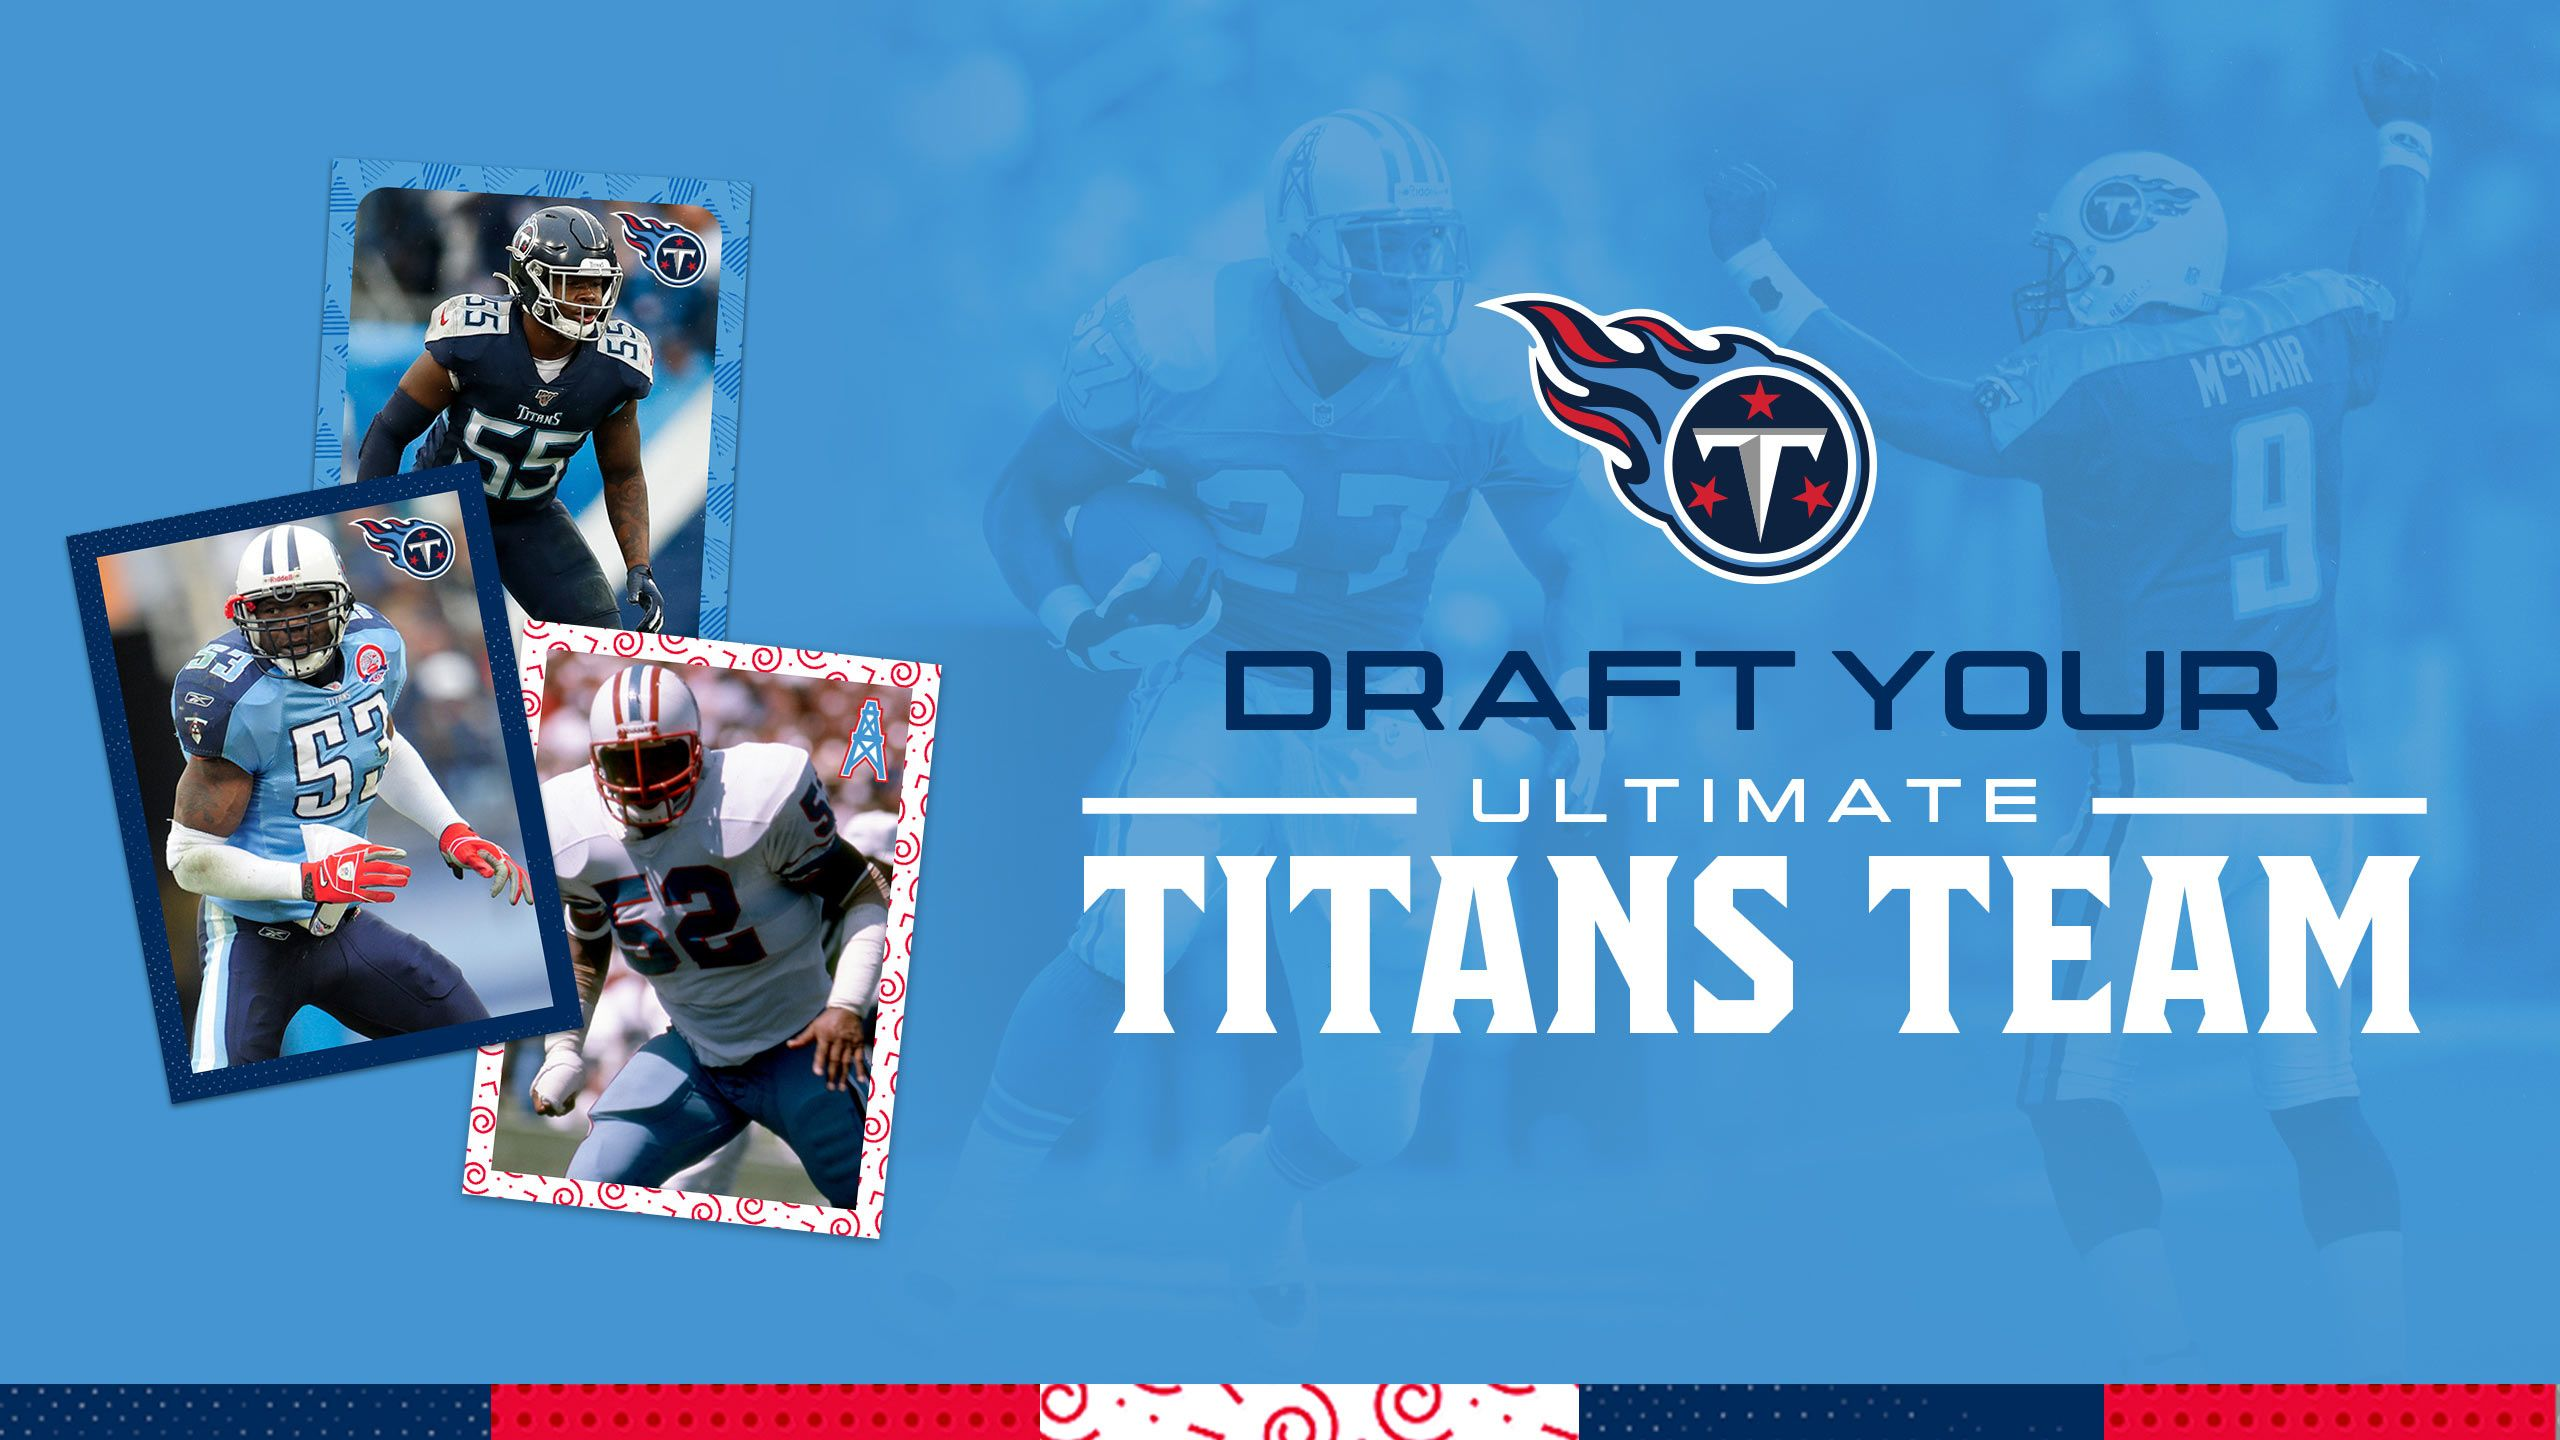 Draft Your Ultimate Titans Team